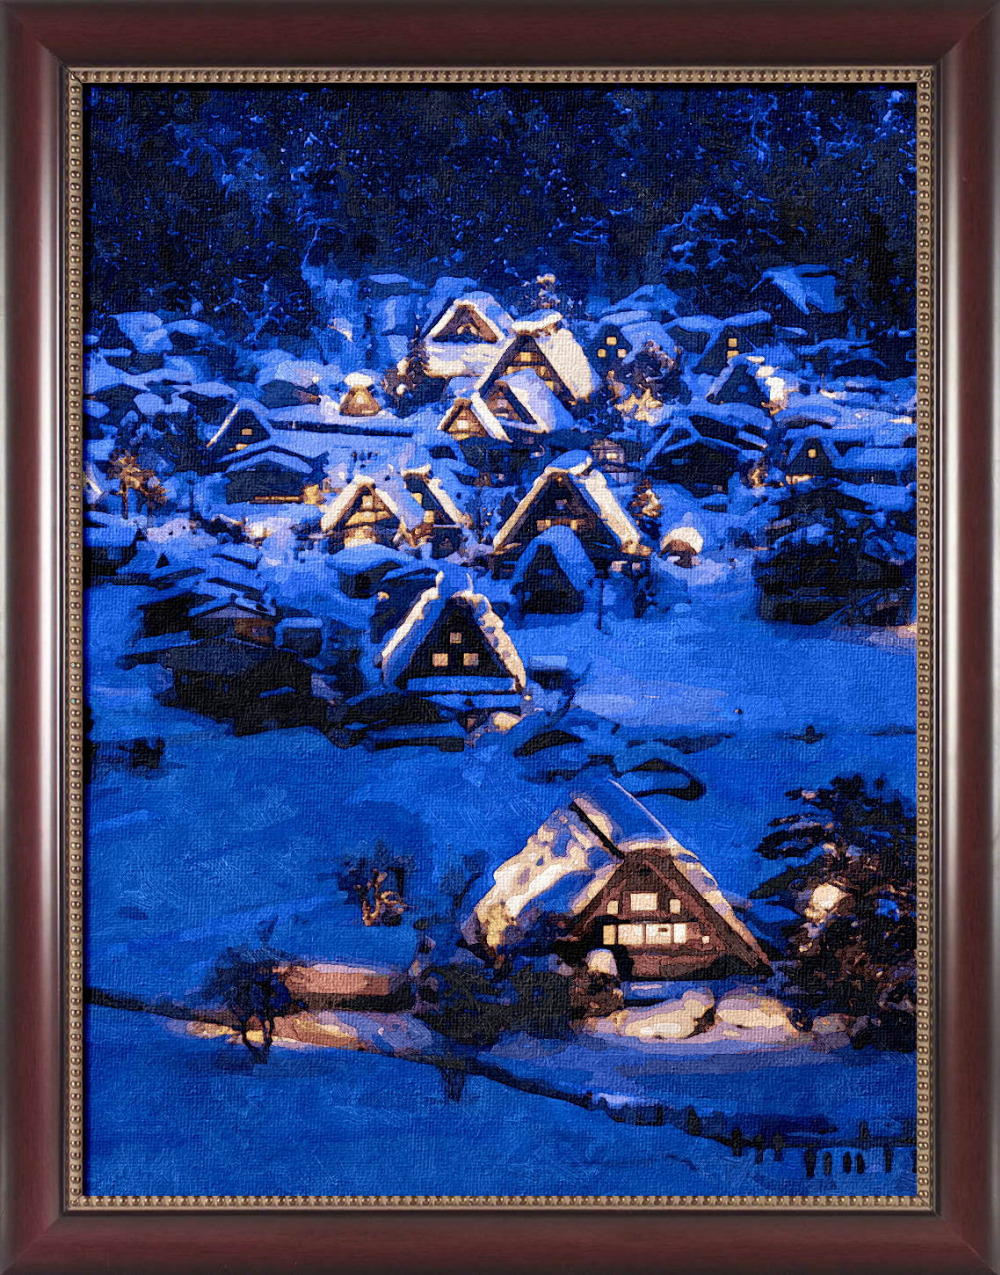 Framed painting by number coloring by numbers for home decor hand painted canvas painting 4050 night in winter